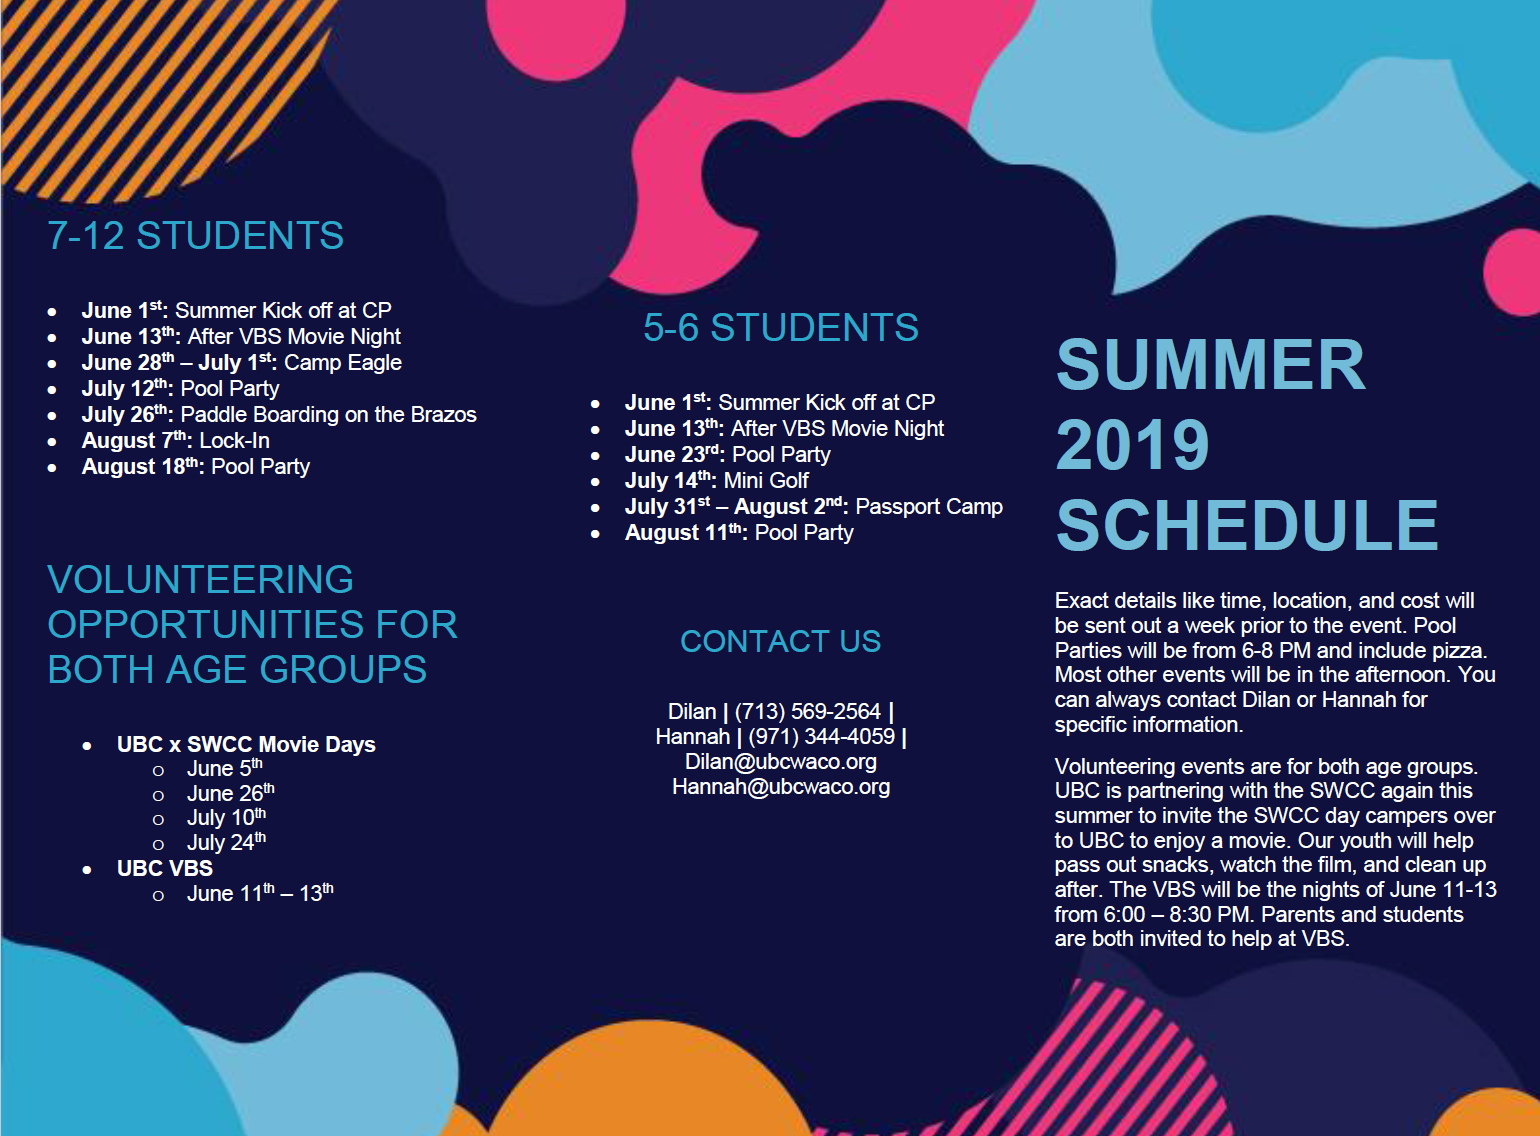 Summer schedule.PNG